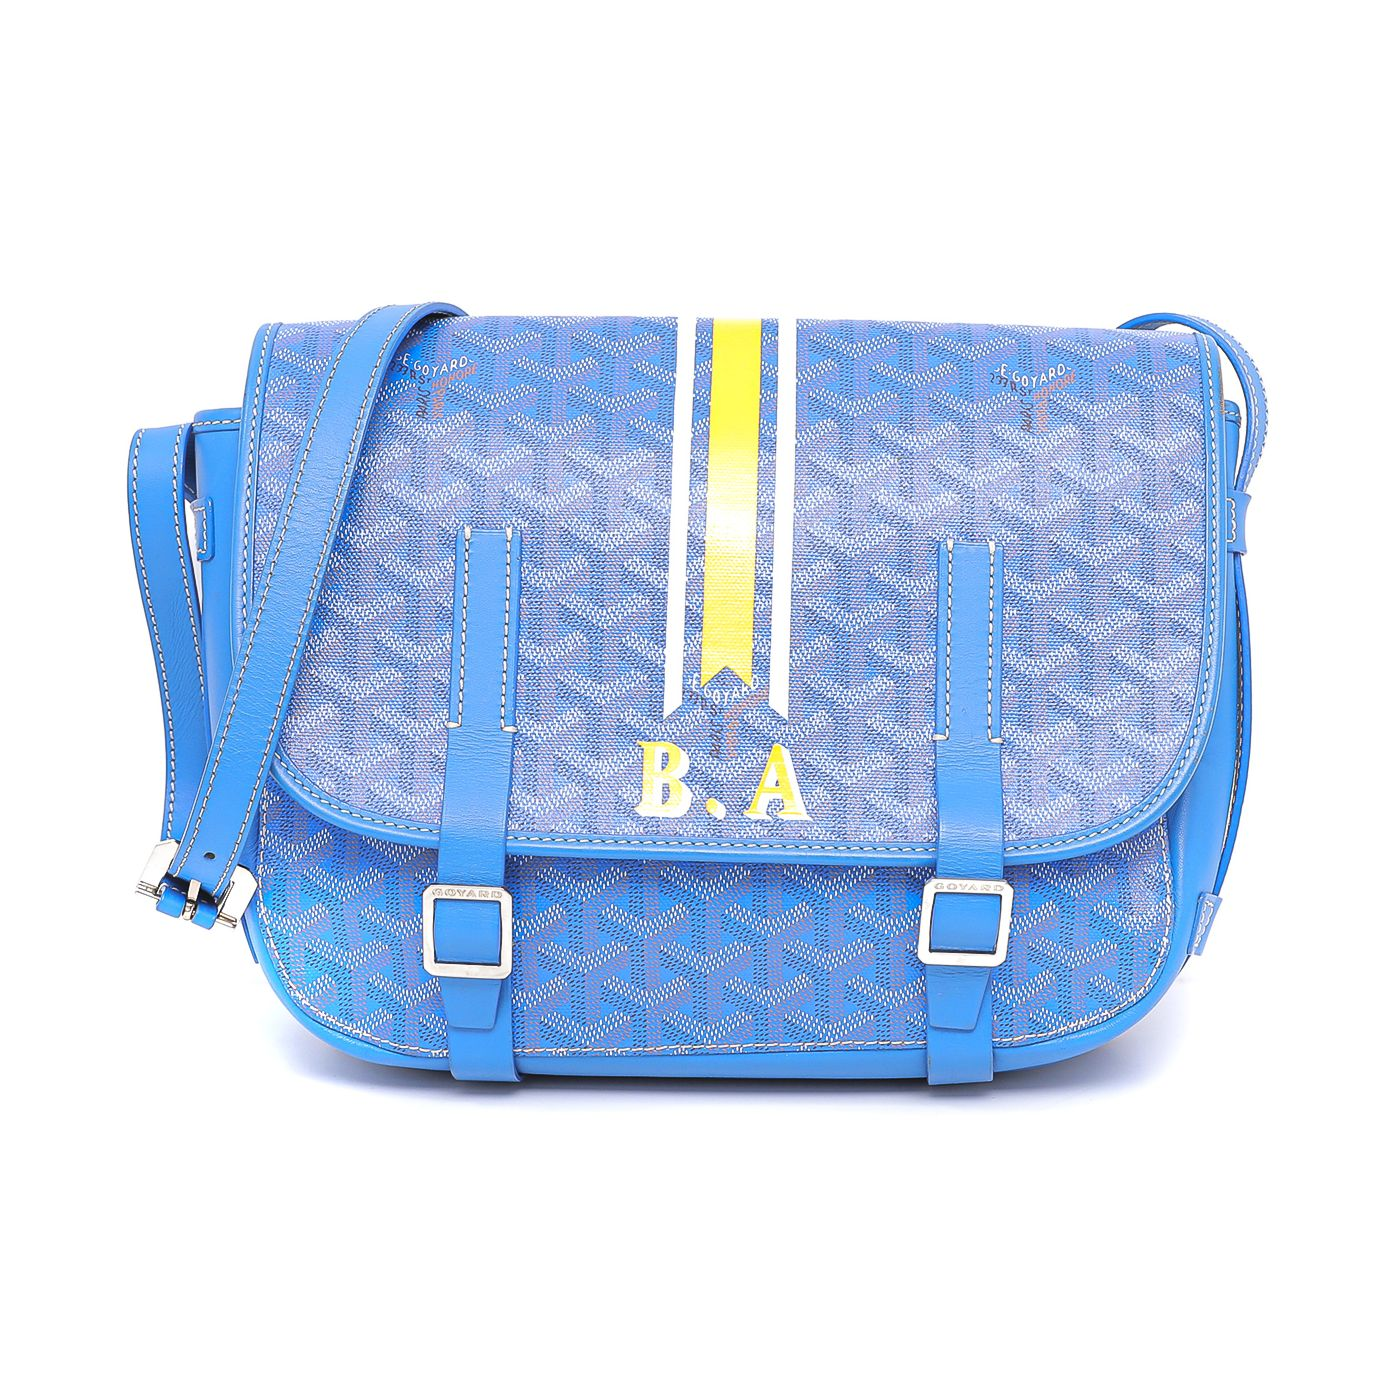 Goyard Multicolor Belvedere Messenger Bag MM